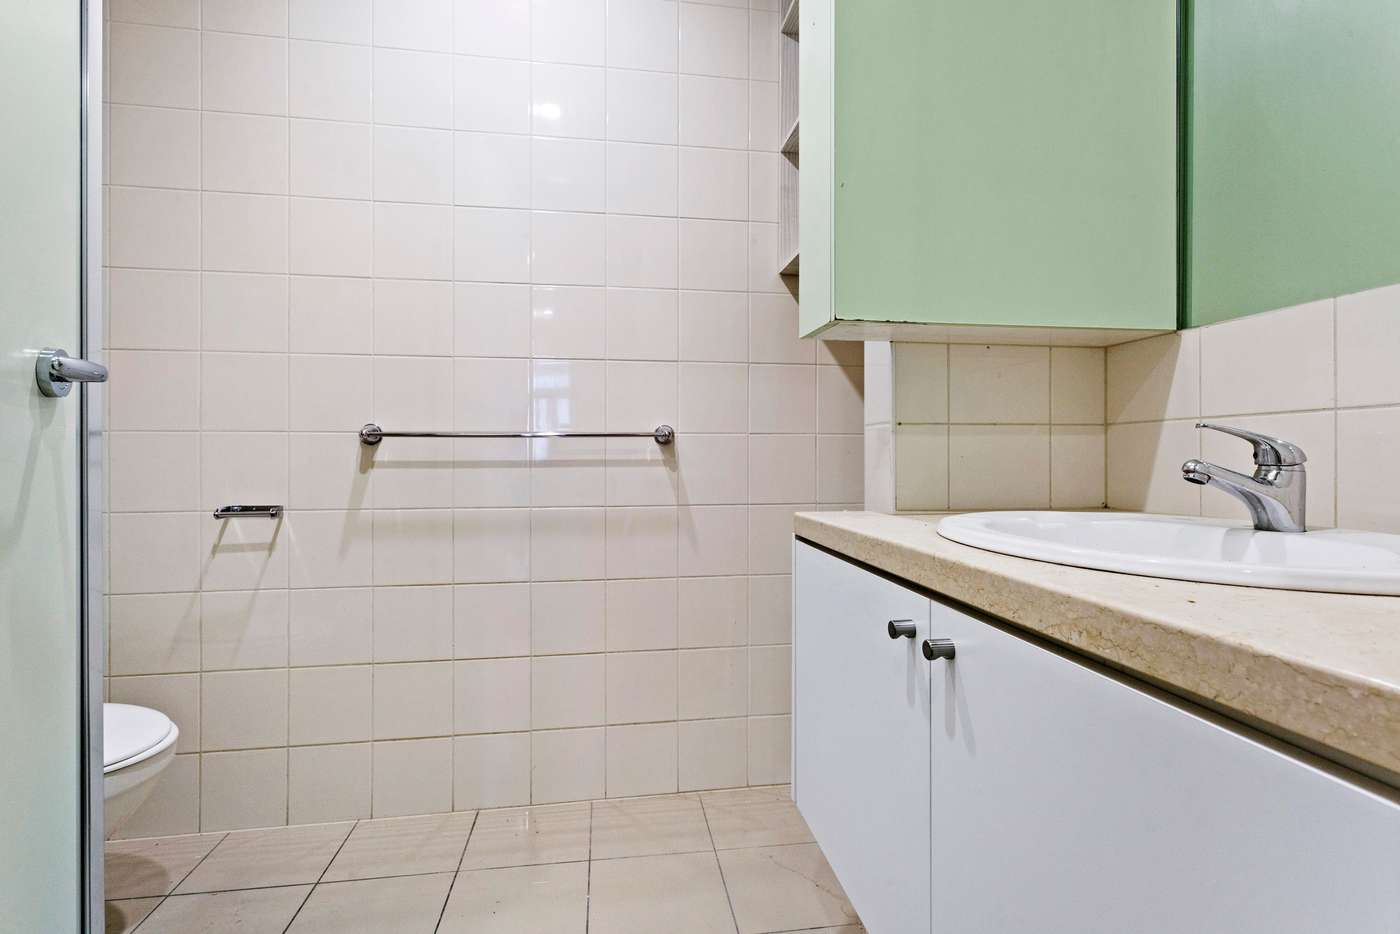 Fifth view of Homely apartment listing, 14/9 Tennyson Street, Richmond VIC 3121